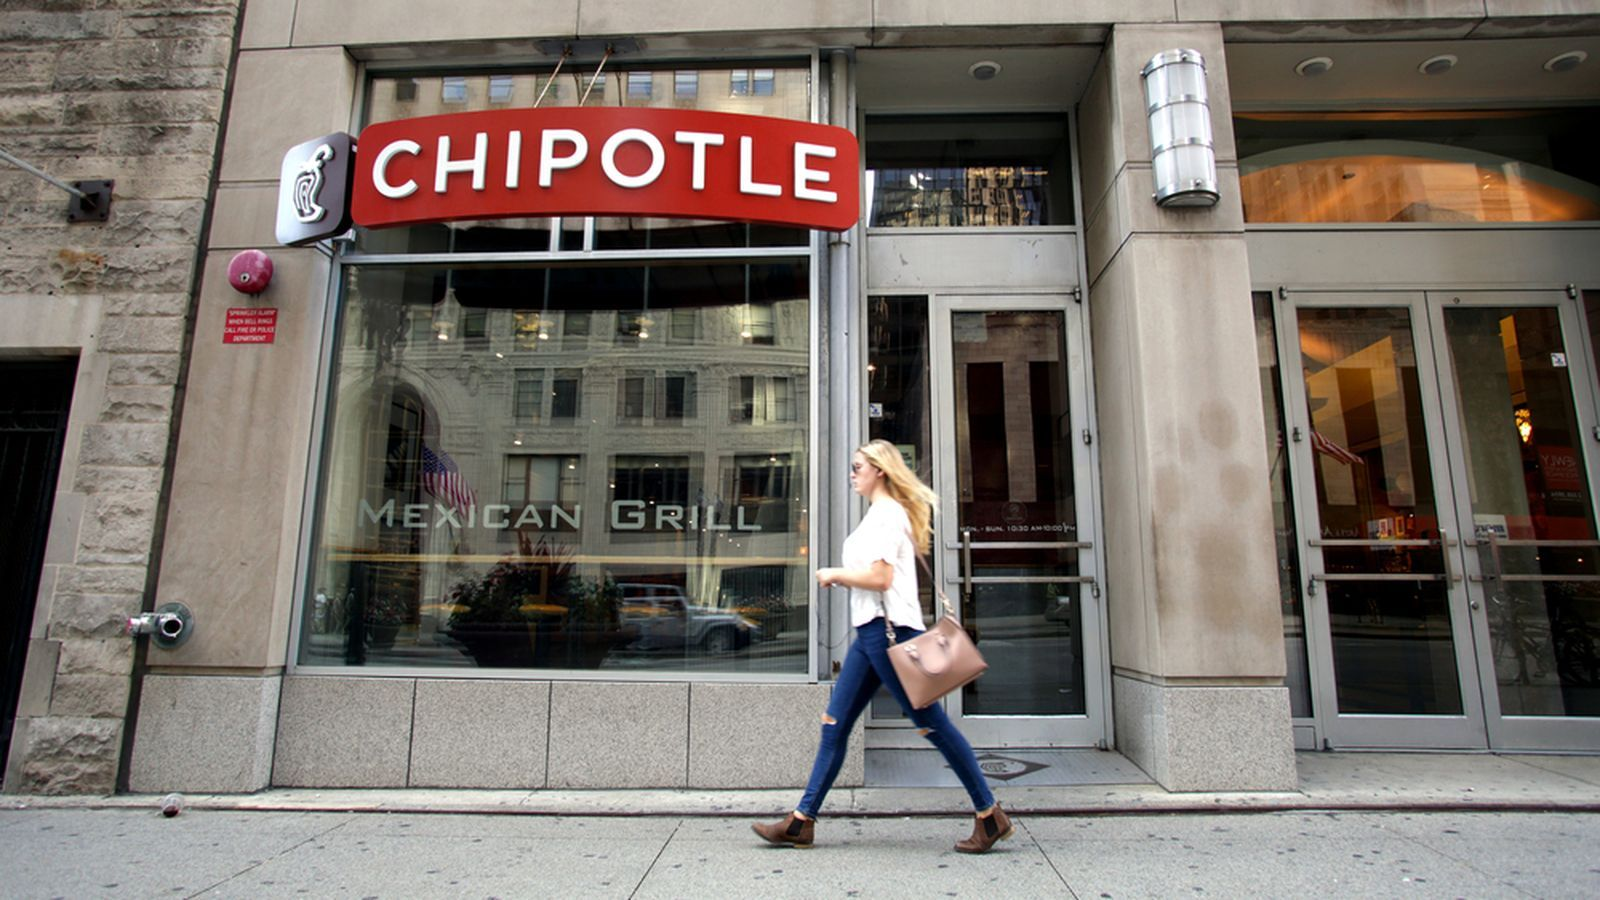 Food Poisoning Reportedly Strikes Again at Chipotle in New